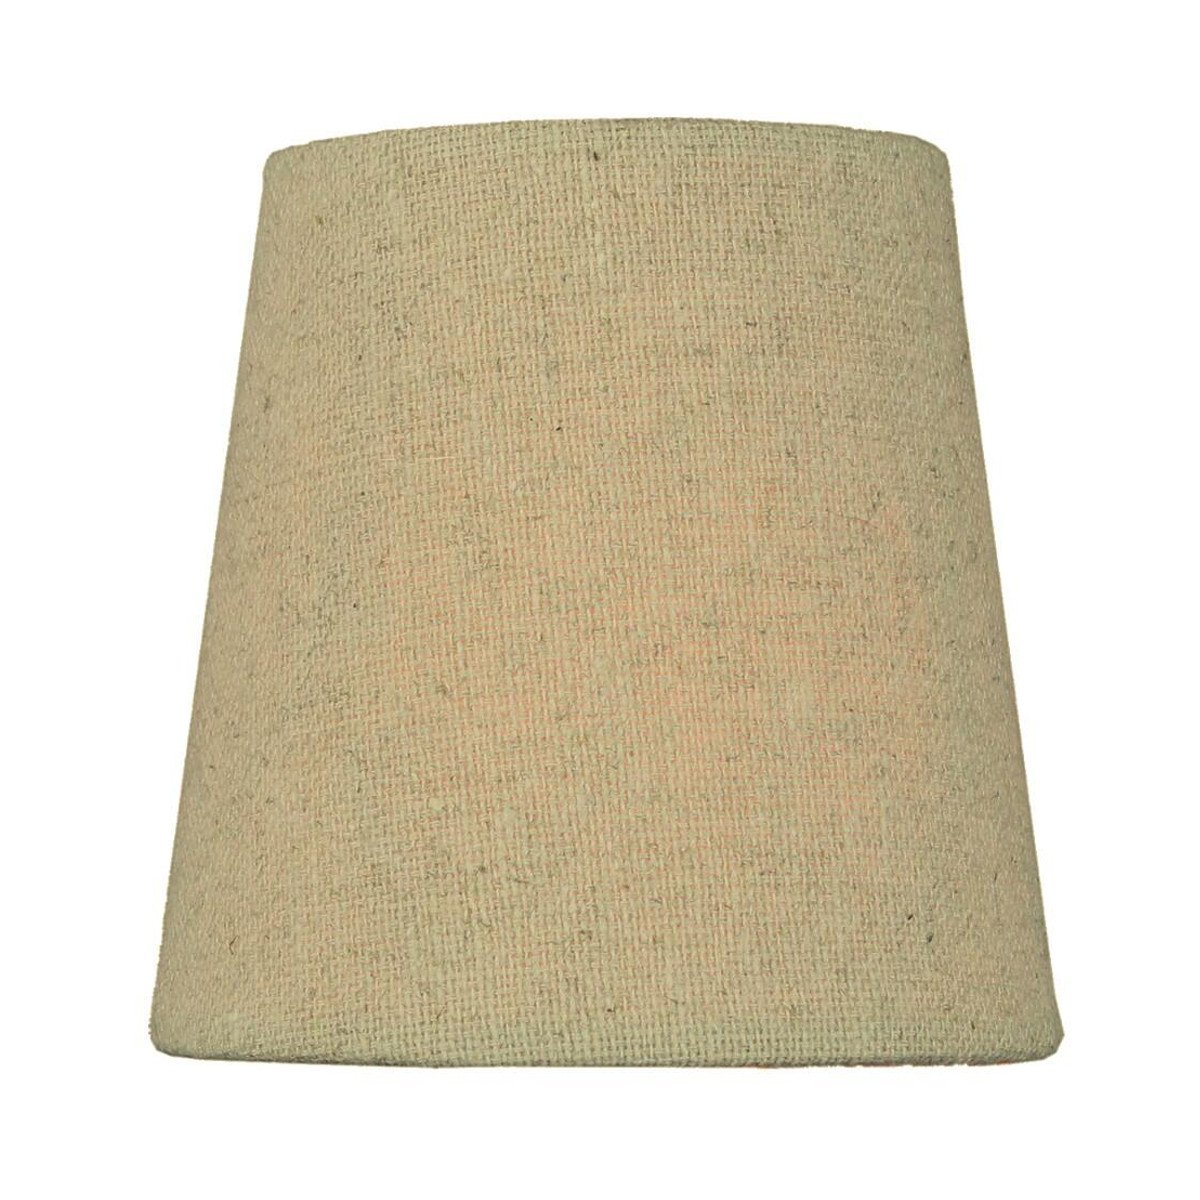 3x4x4 Chandelier Sand Linen Clip-On Lampshade By Home Concept - Perfect for chandeliers, foyer lights, and wall sconces - small, sand linen